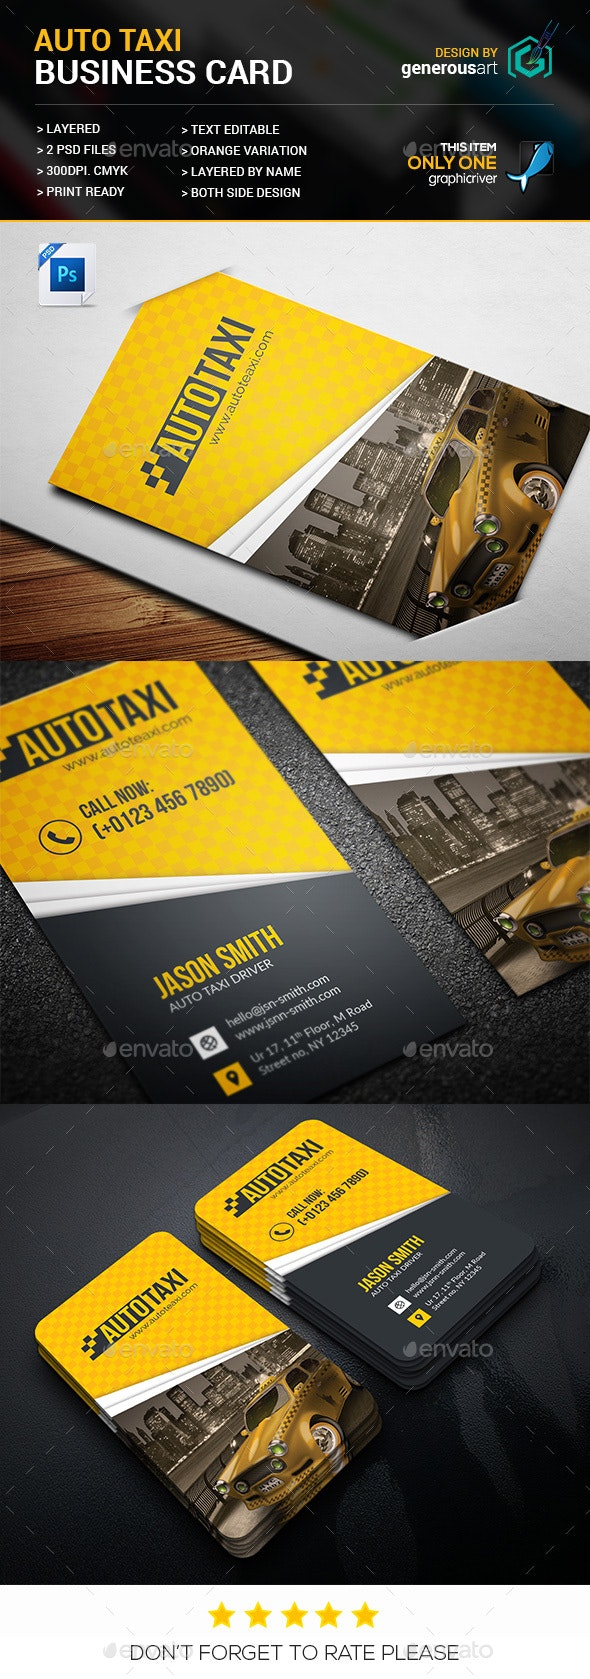 Auto Taxi Business Card - Business Cards Print Templates